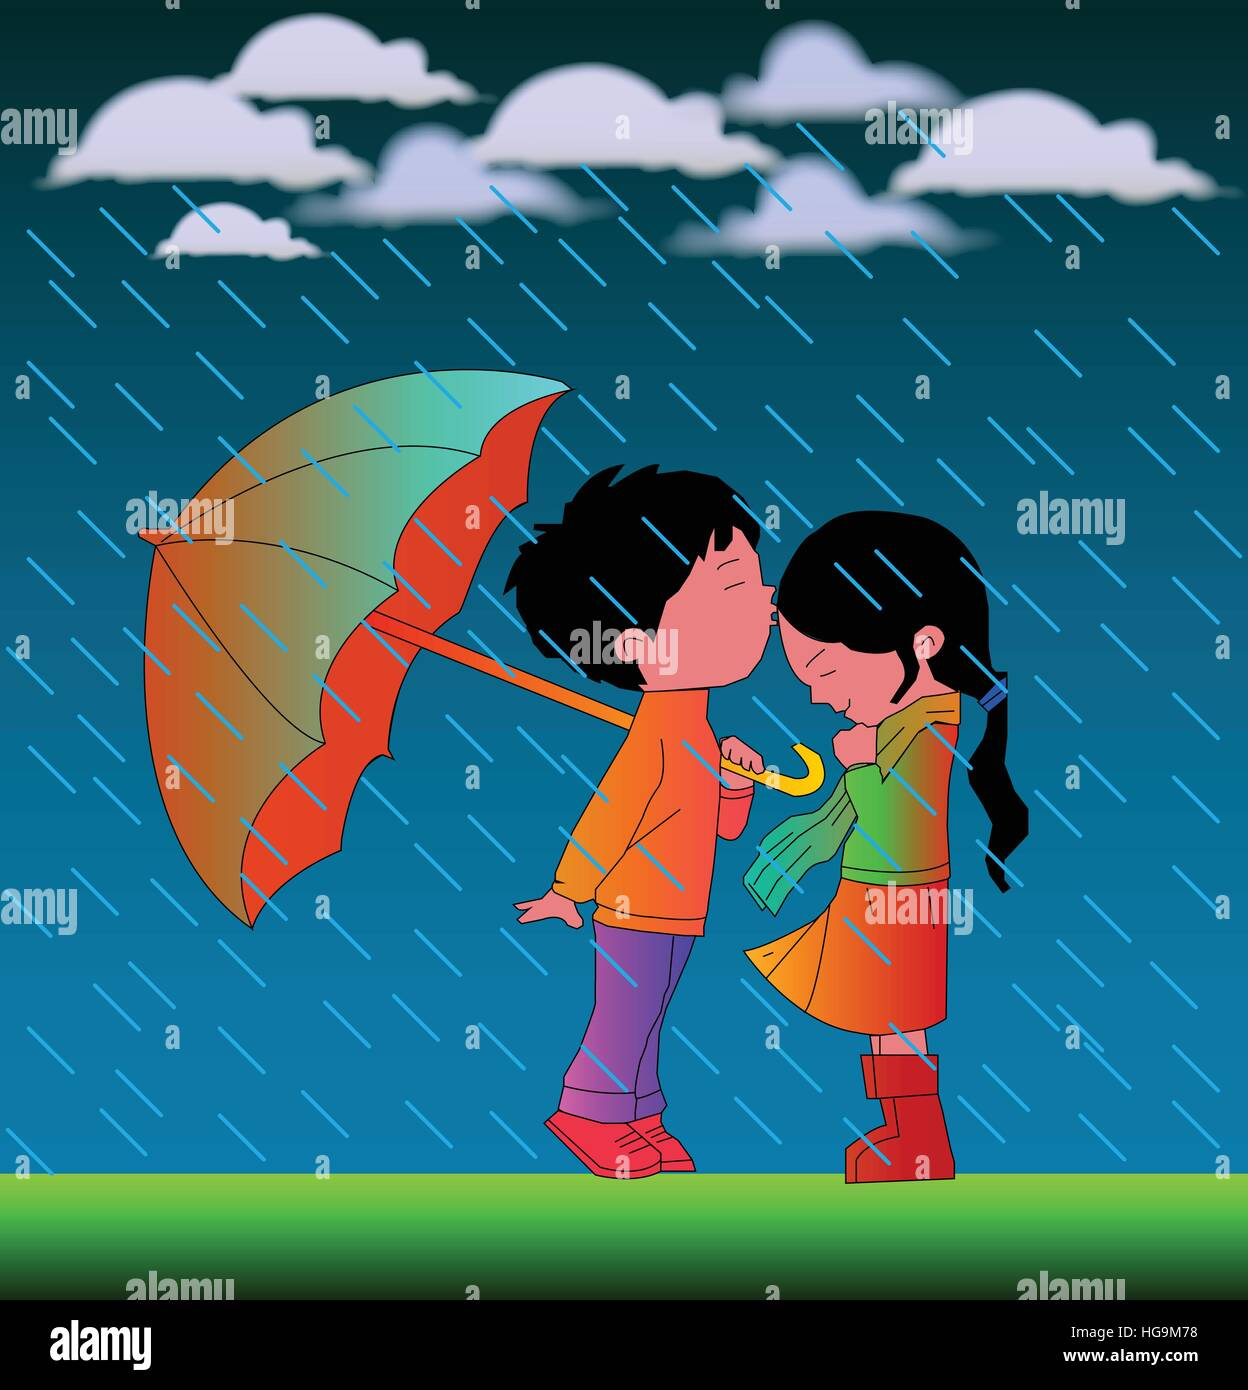 Romantic cartoon couple in rain vector illustration with nice background stock image